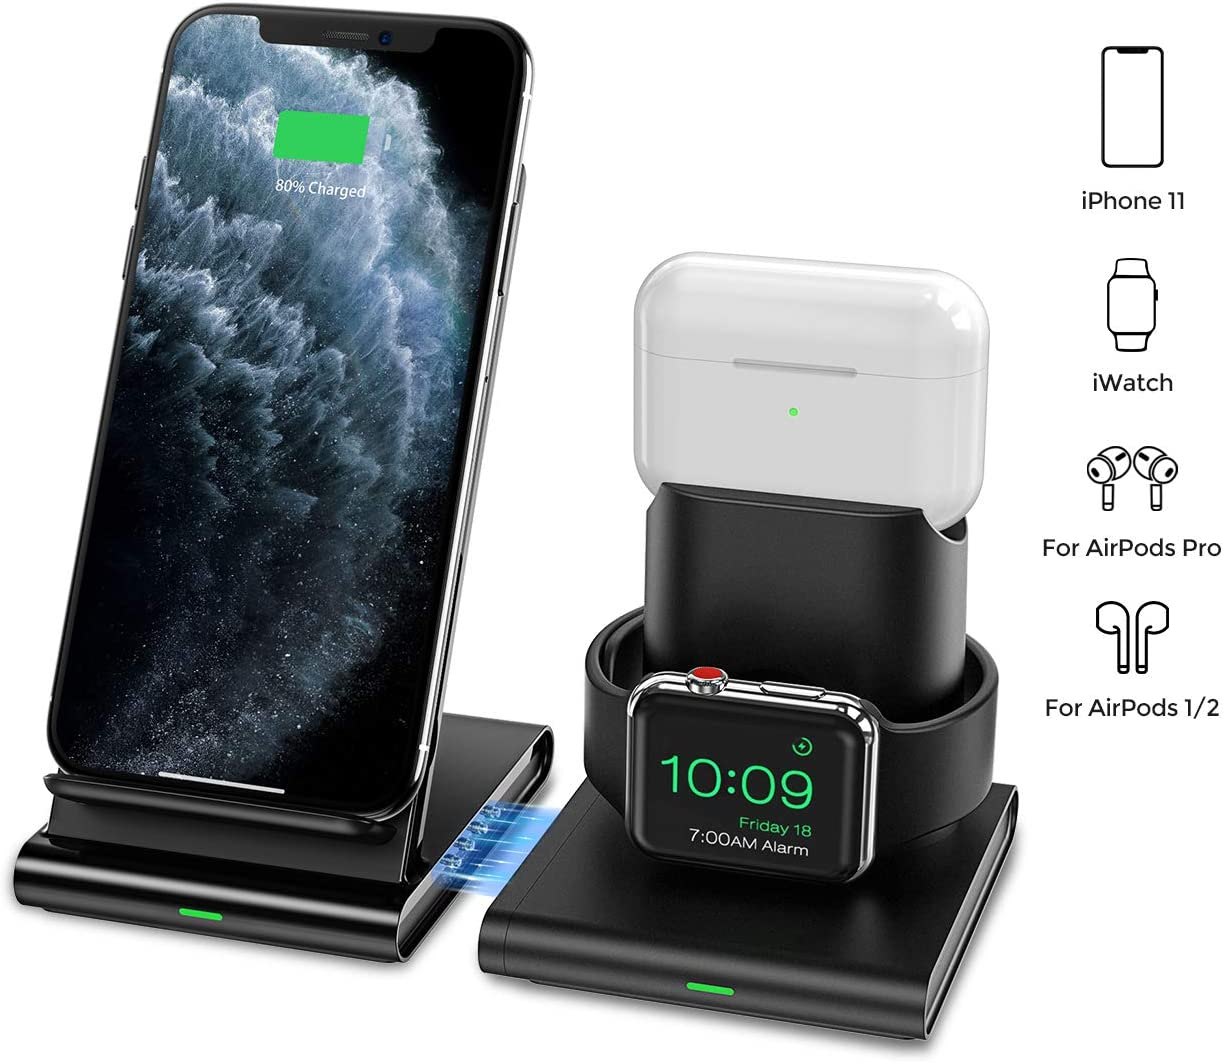 Seneo Wireless Charger, 3 in 1 Wireless Charging Station for Apple Watch, AirPods Pro2, Detachable and Magnetic Wireless Charging Stand for iPhone 11